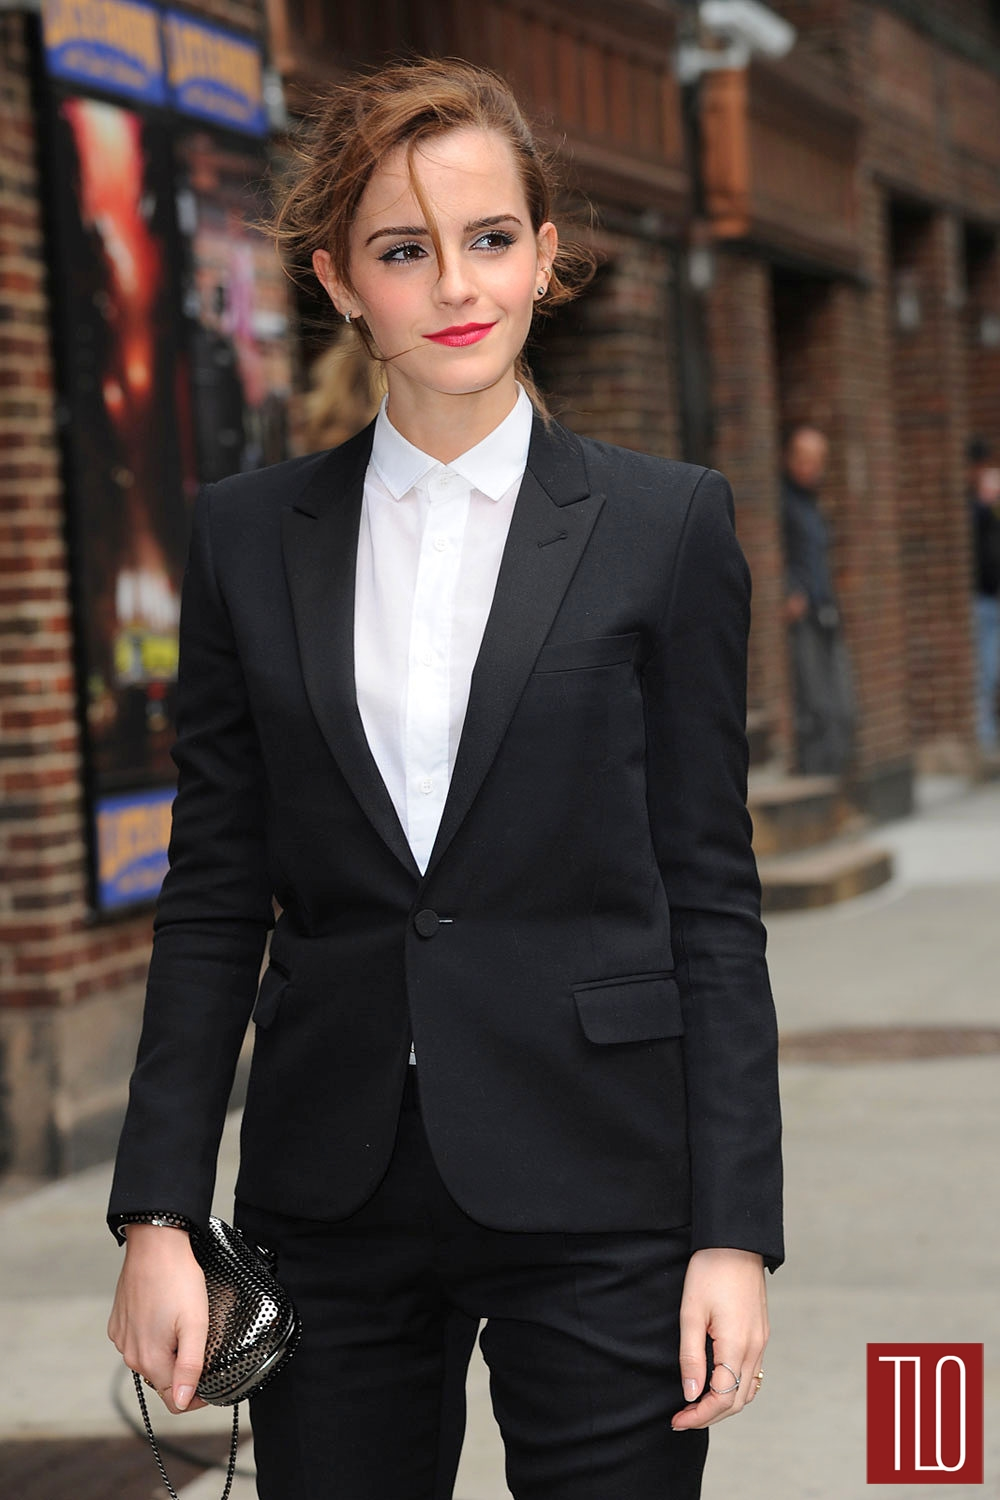 Emma-Watson-Saint-Laurent-David-Letterman-Tom-Lorenzo-Site-TLO (1)